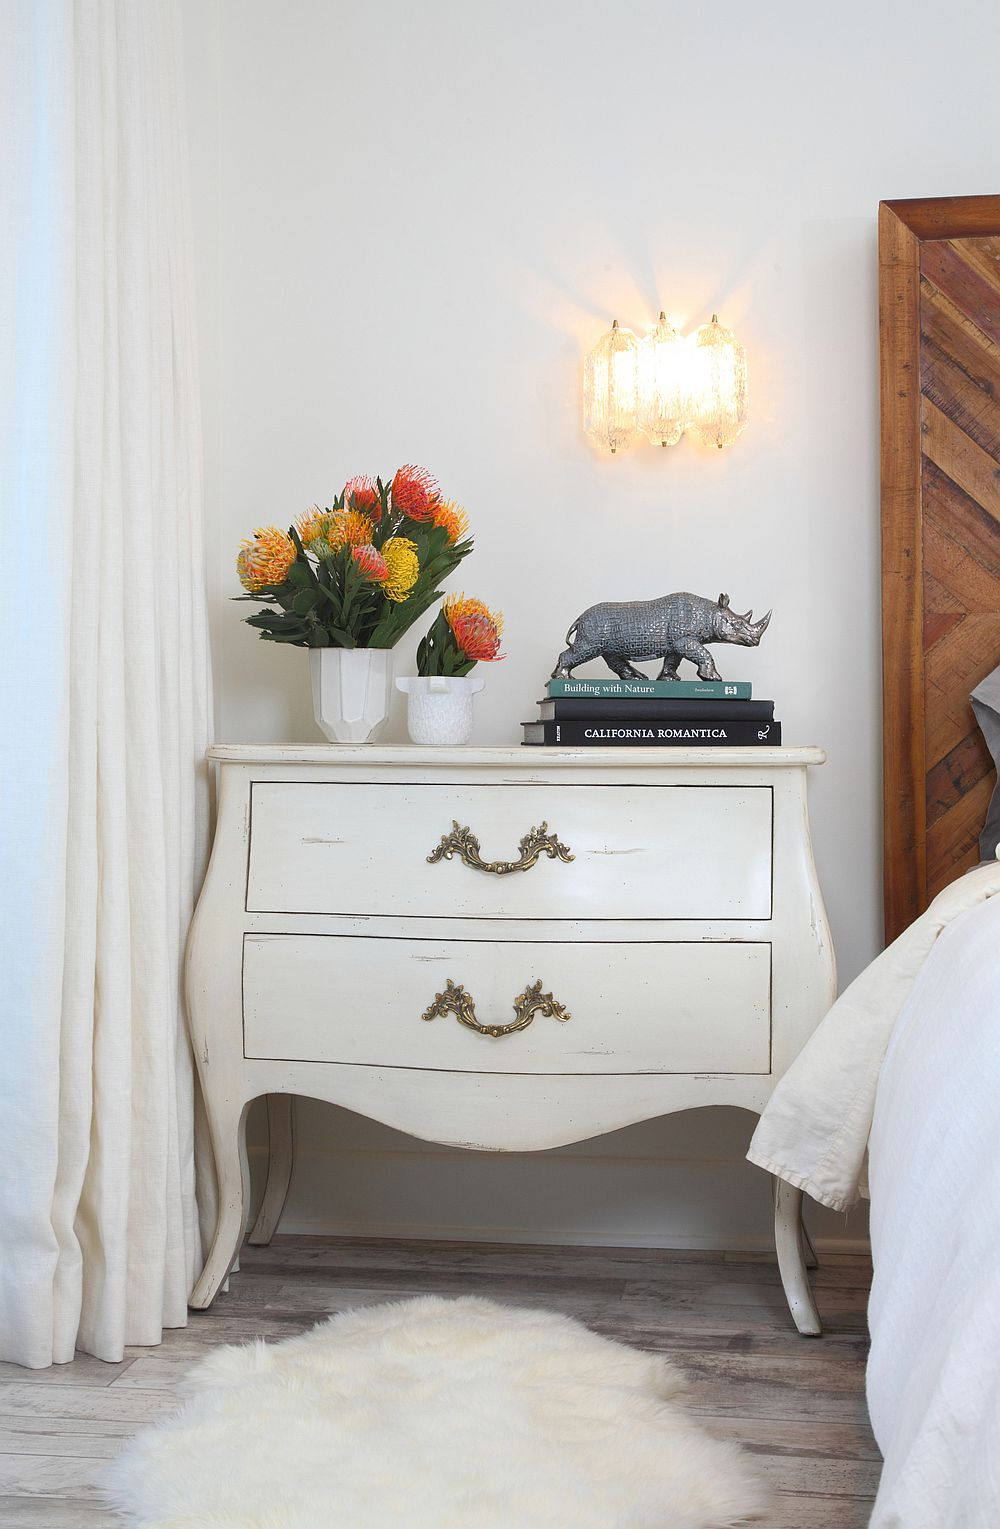 Cozy lighting and organic finishes along with midcentury decor add to the appeal of the bedroom